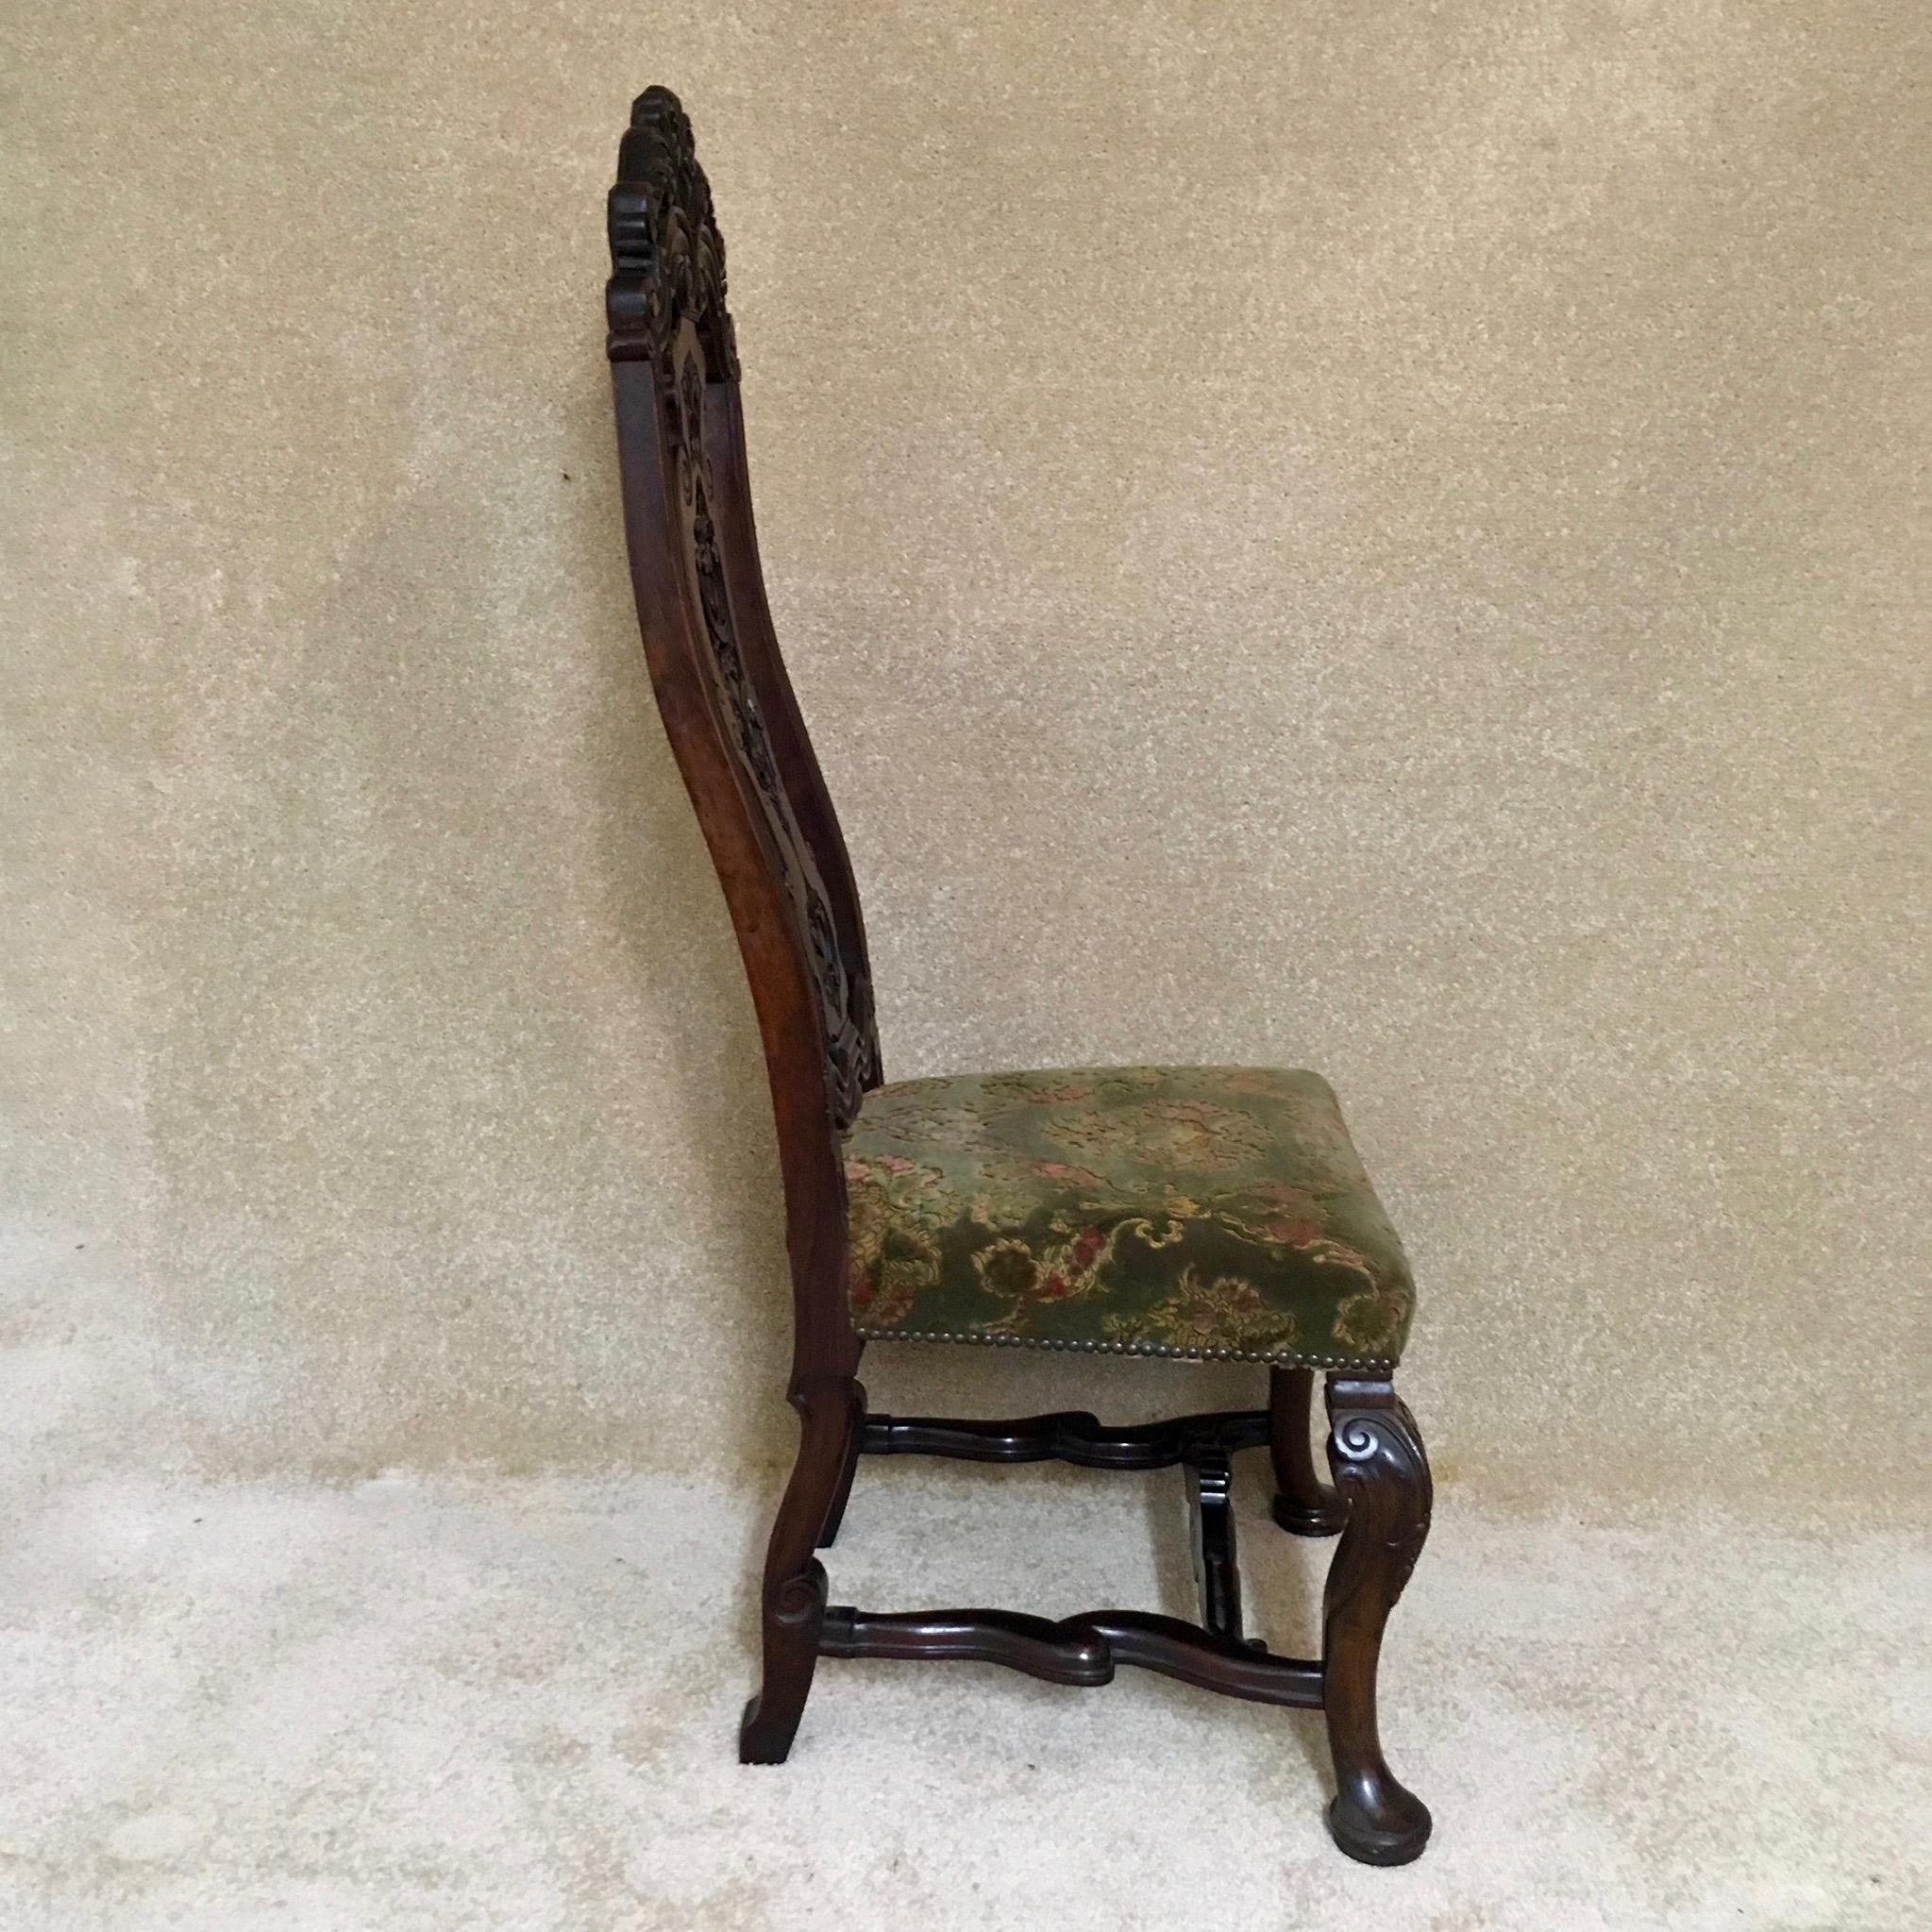 Antique Looking Chairs: 19th Century Walnut Carolean Style High Back Chair